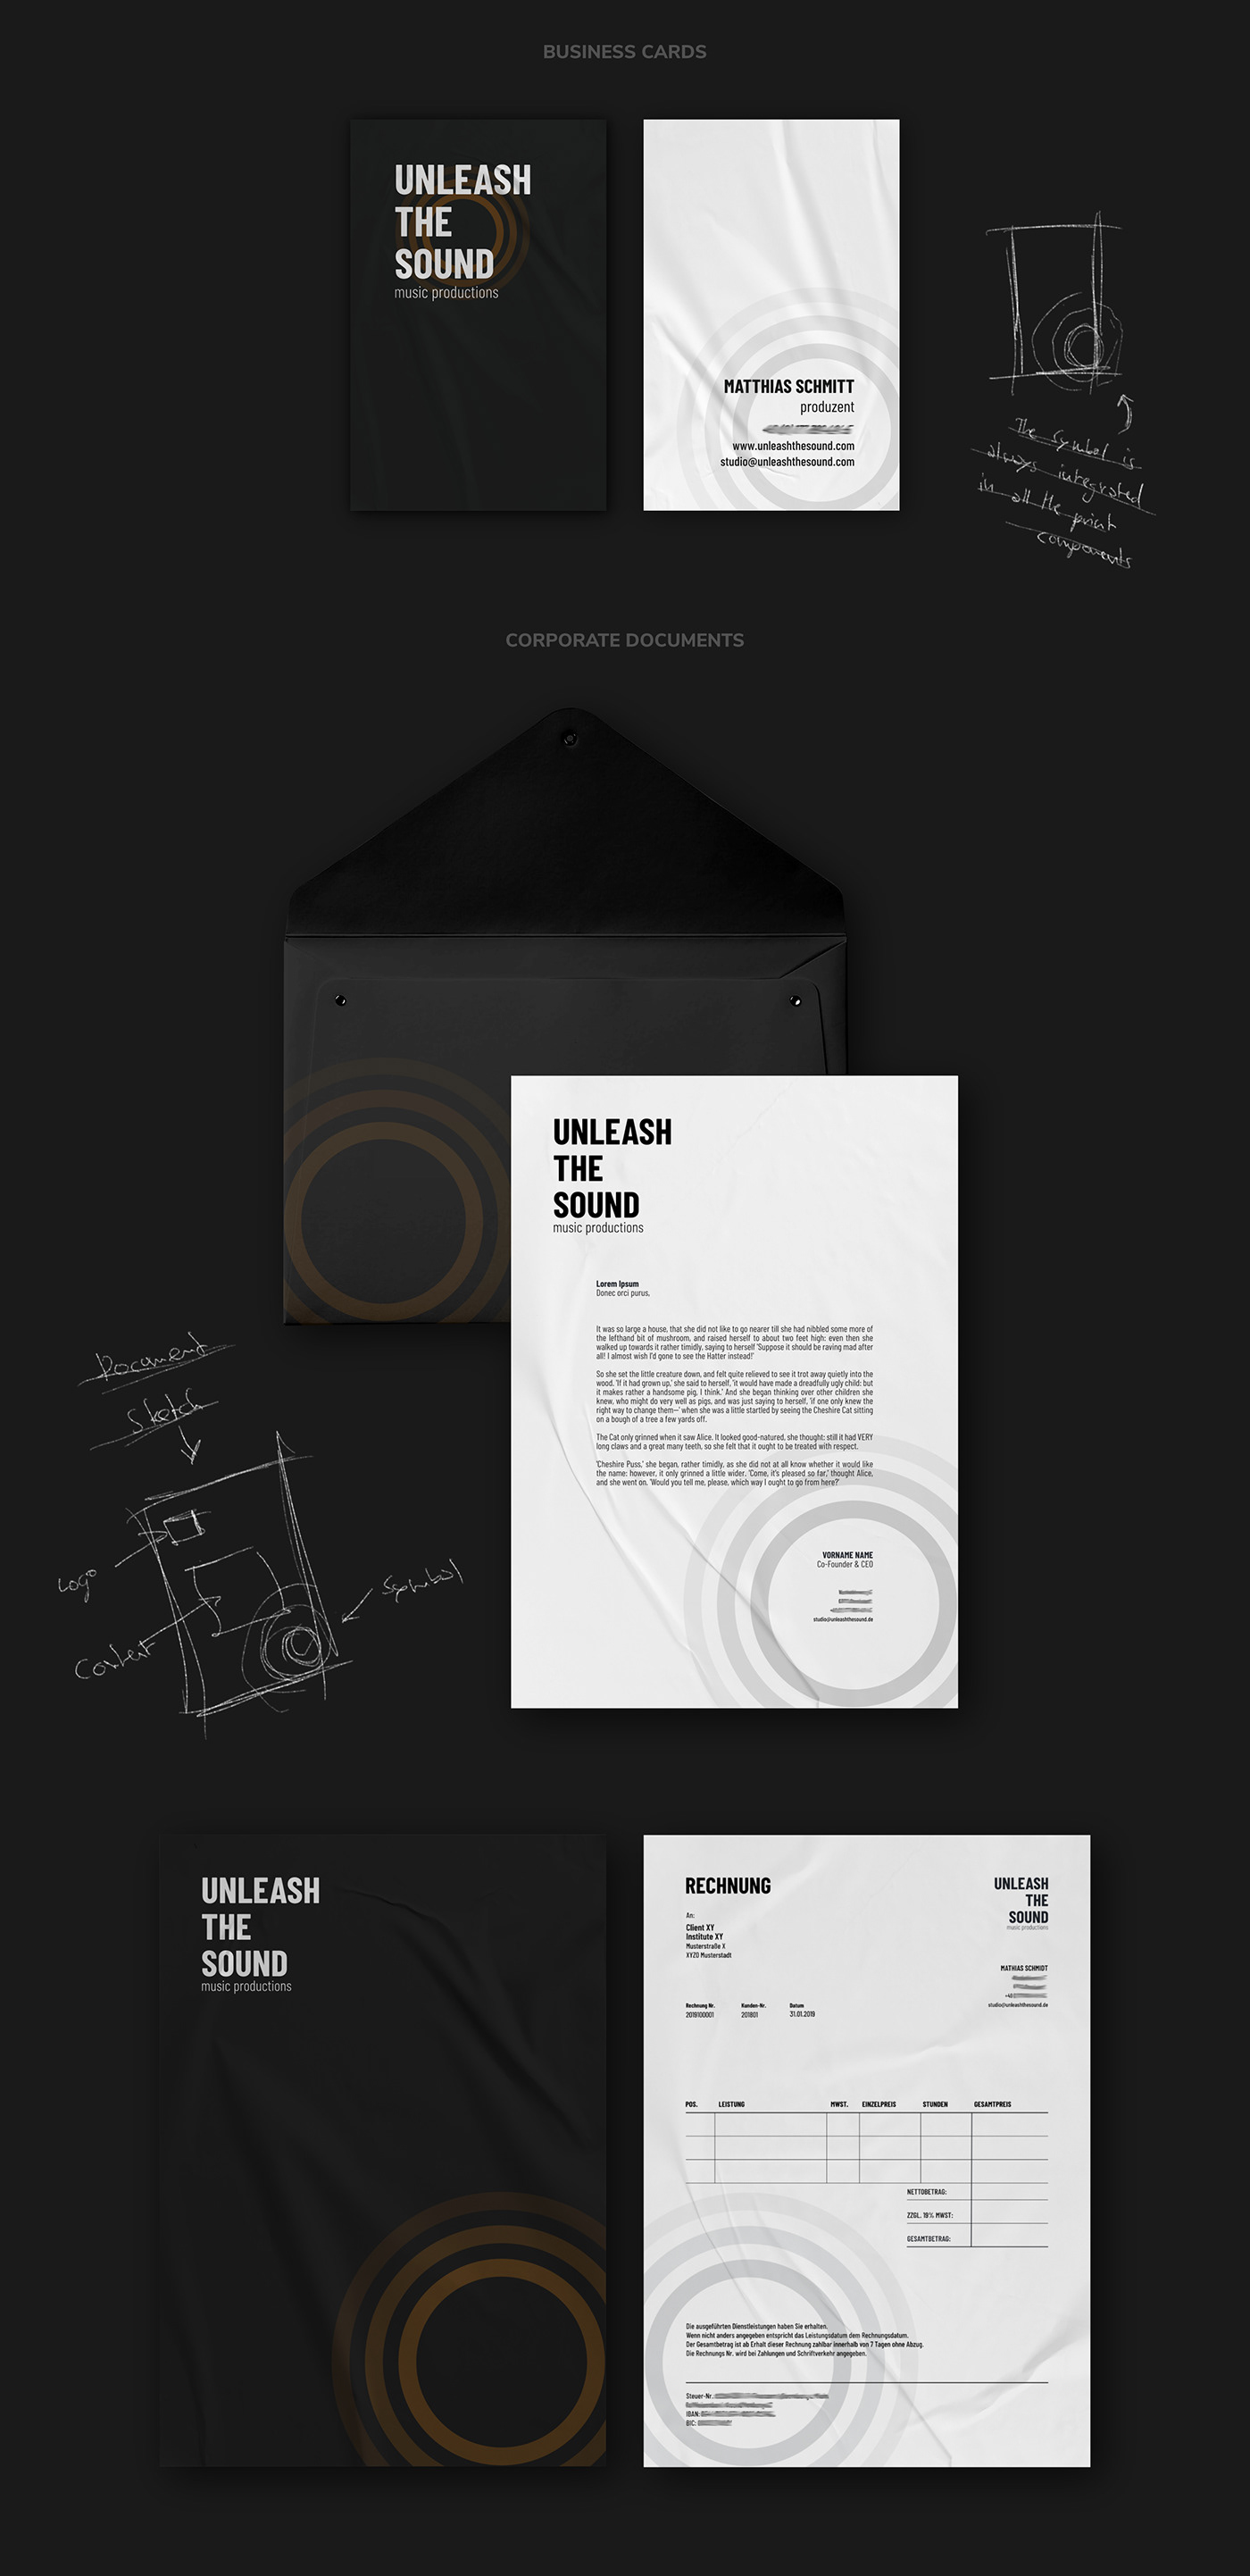 Unleash The Sound // Business Cards + Documents